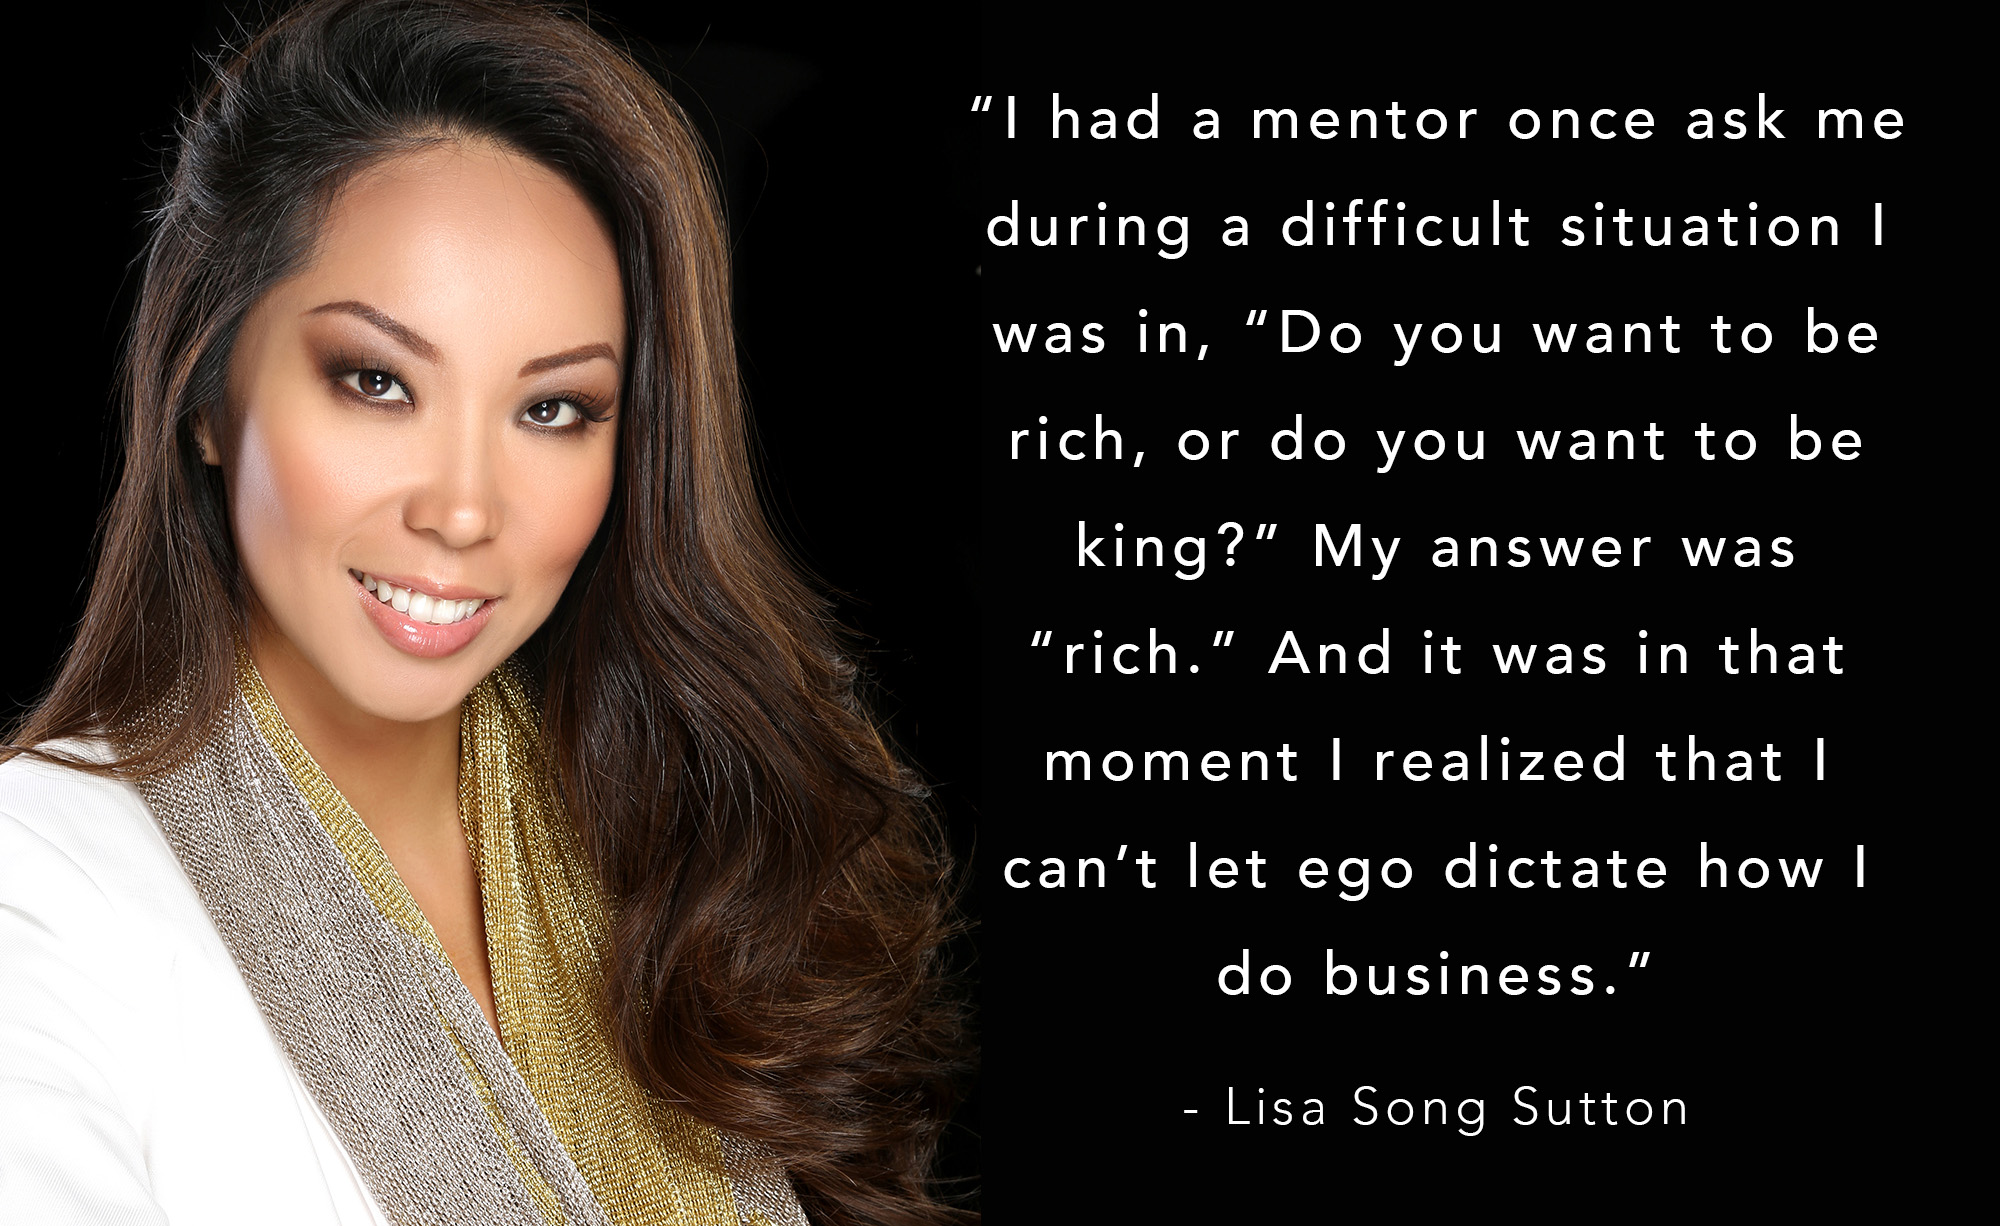 Lisa Song Sutton advice about getting rich or being a king